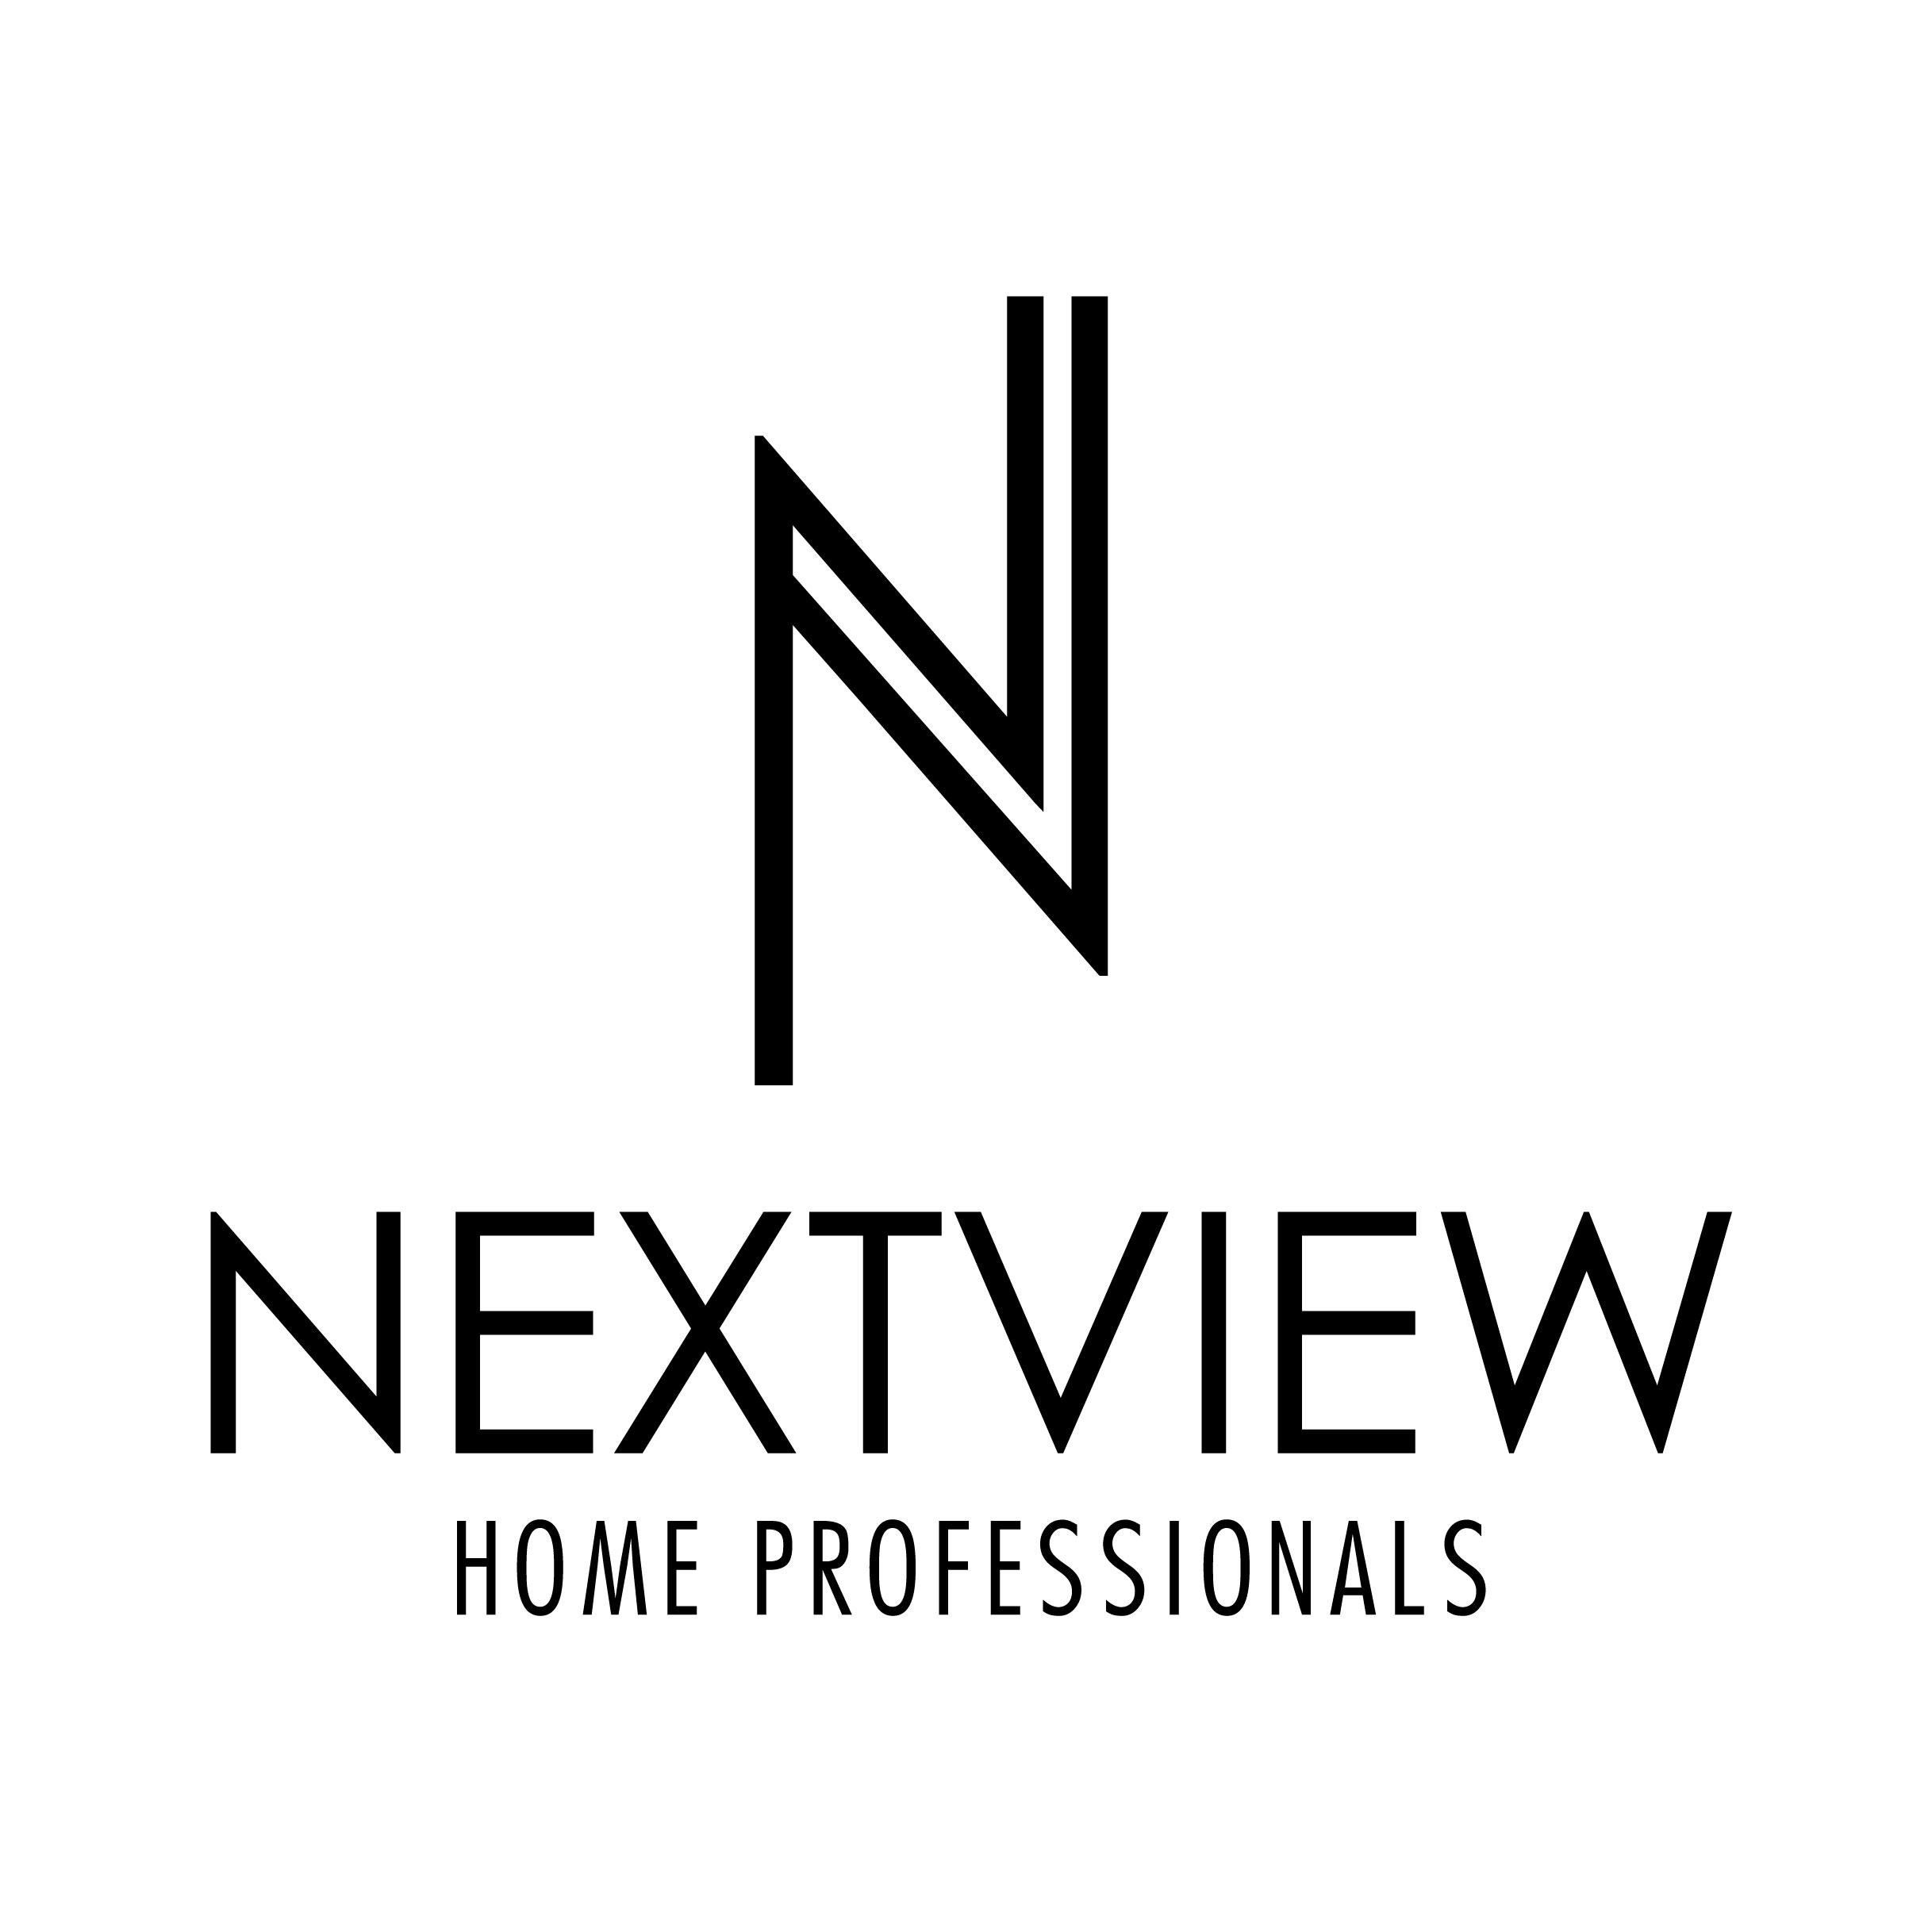 NextView Home Professionals